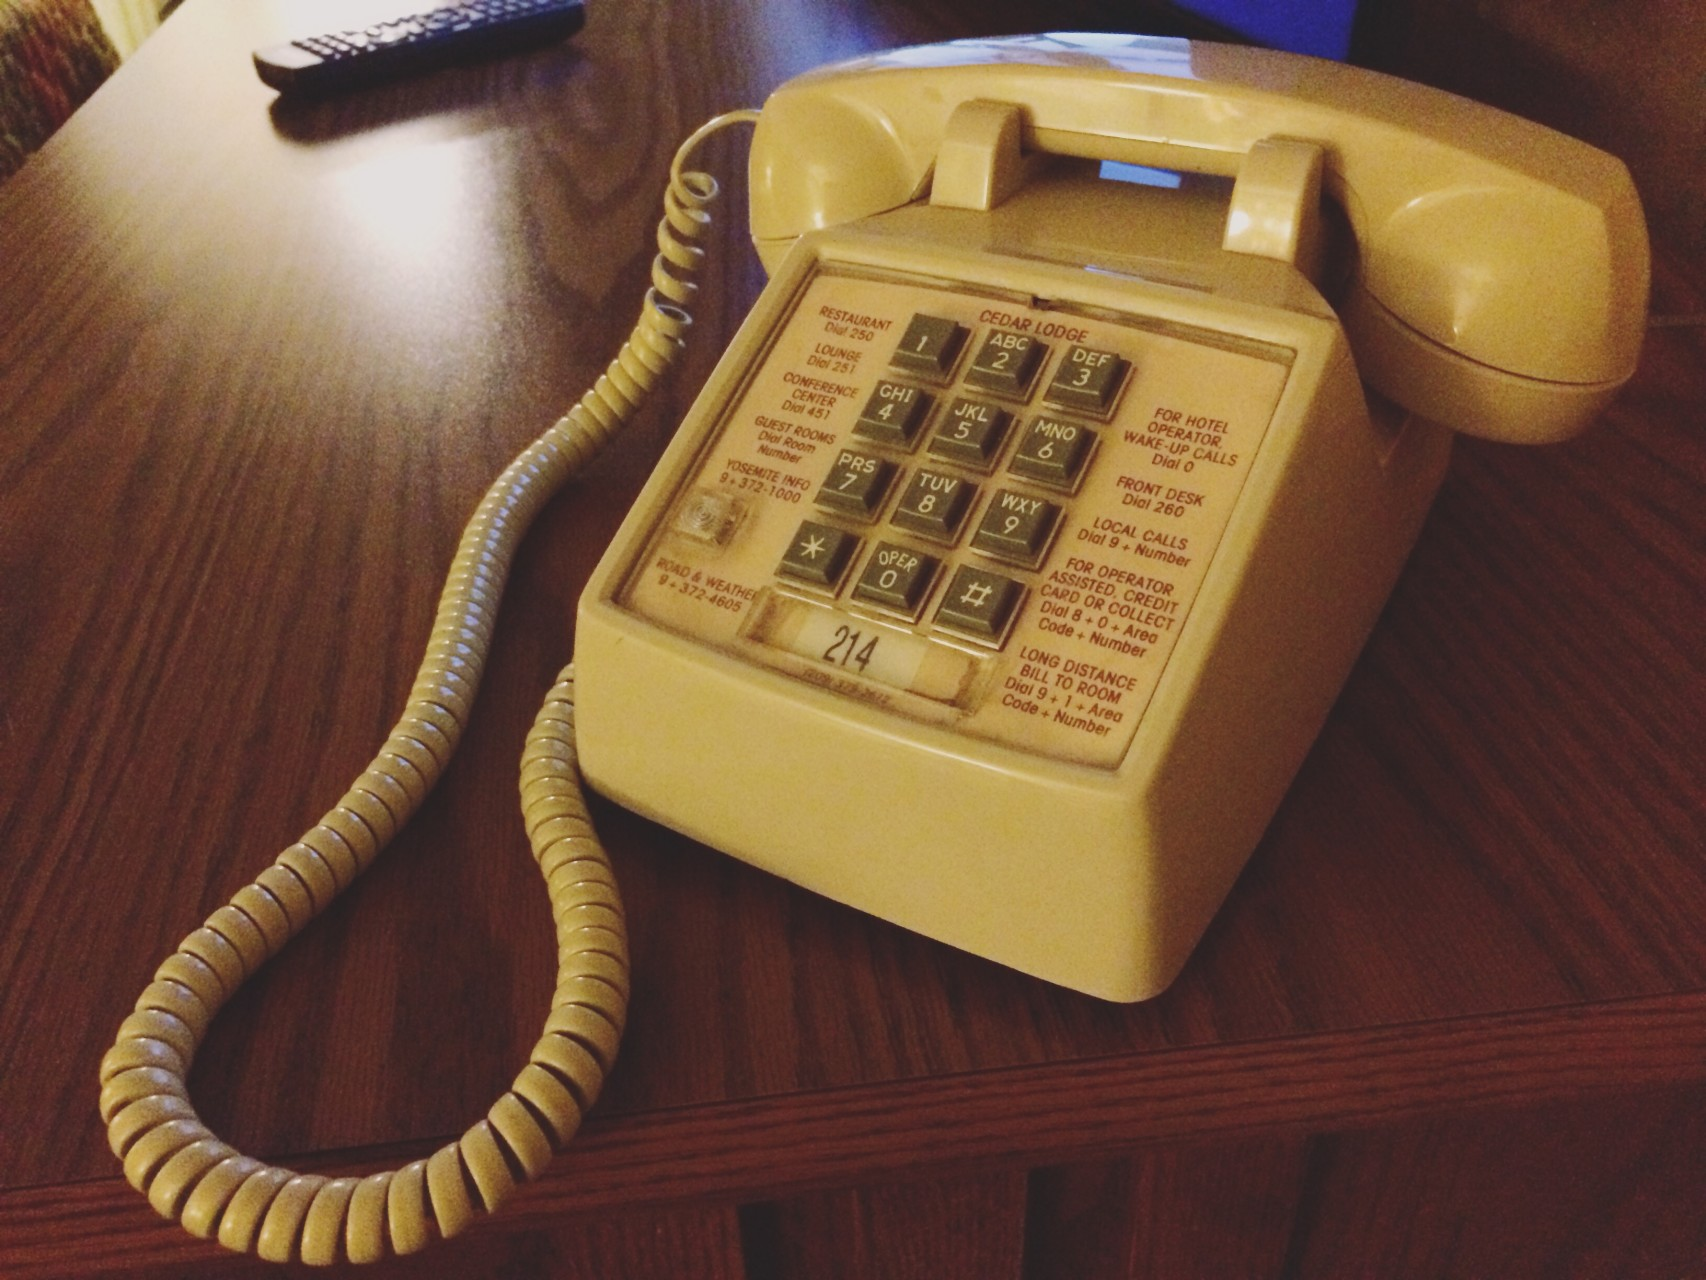 The secret to a successful #ridewriteretreat is no services. Kickin' it old school. 50c a call.